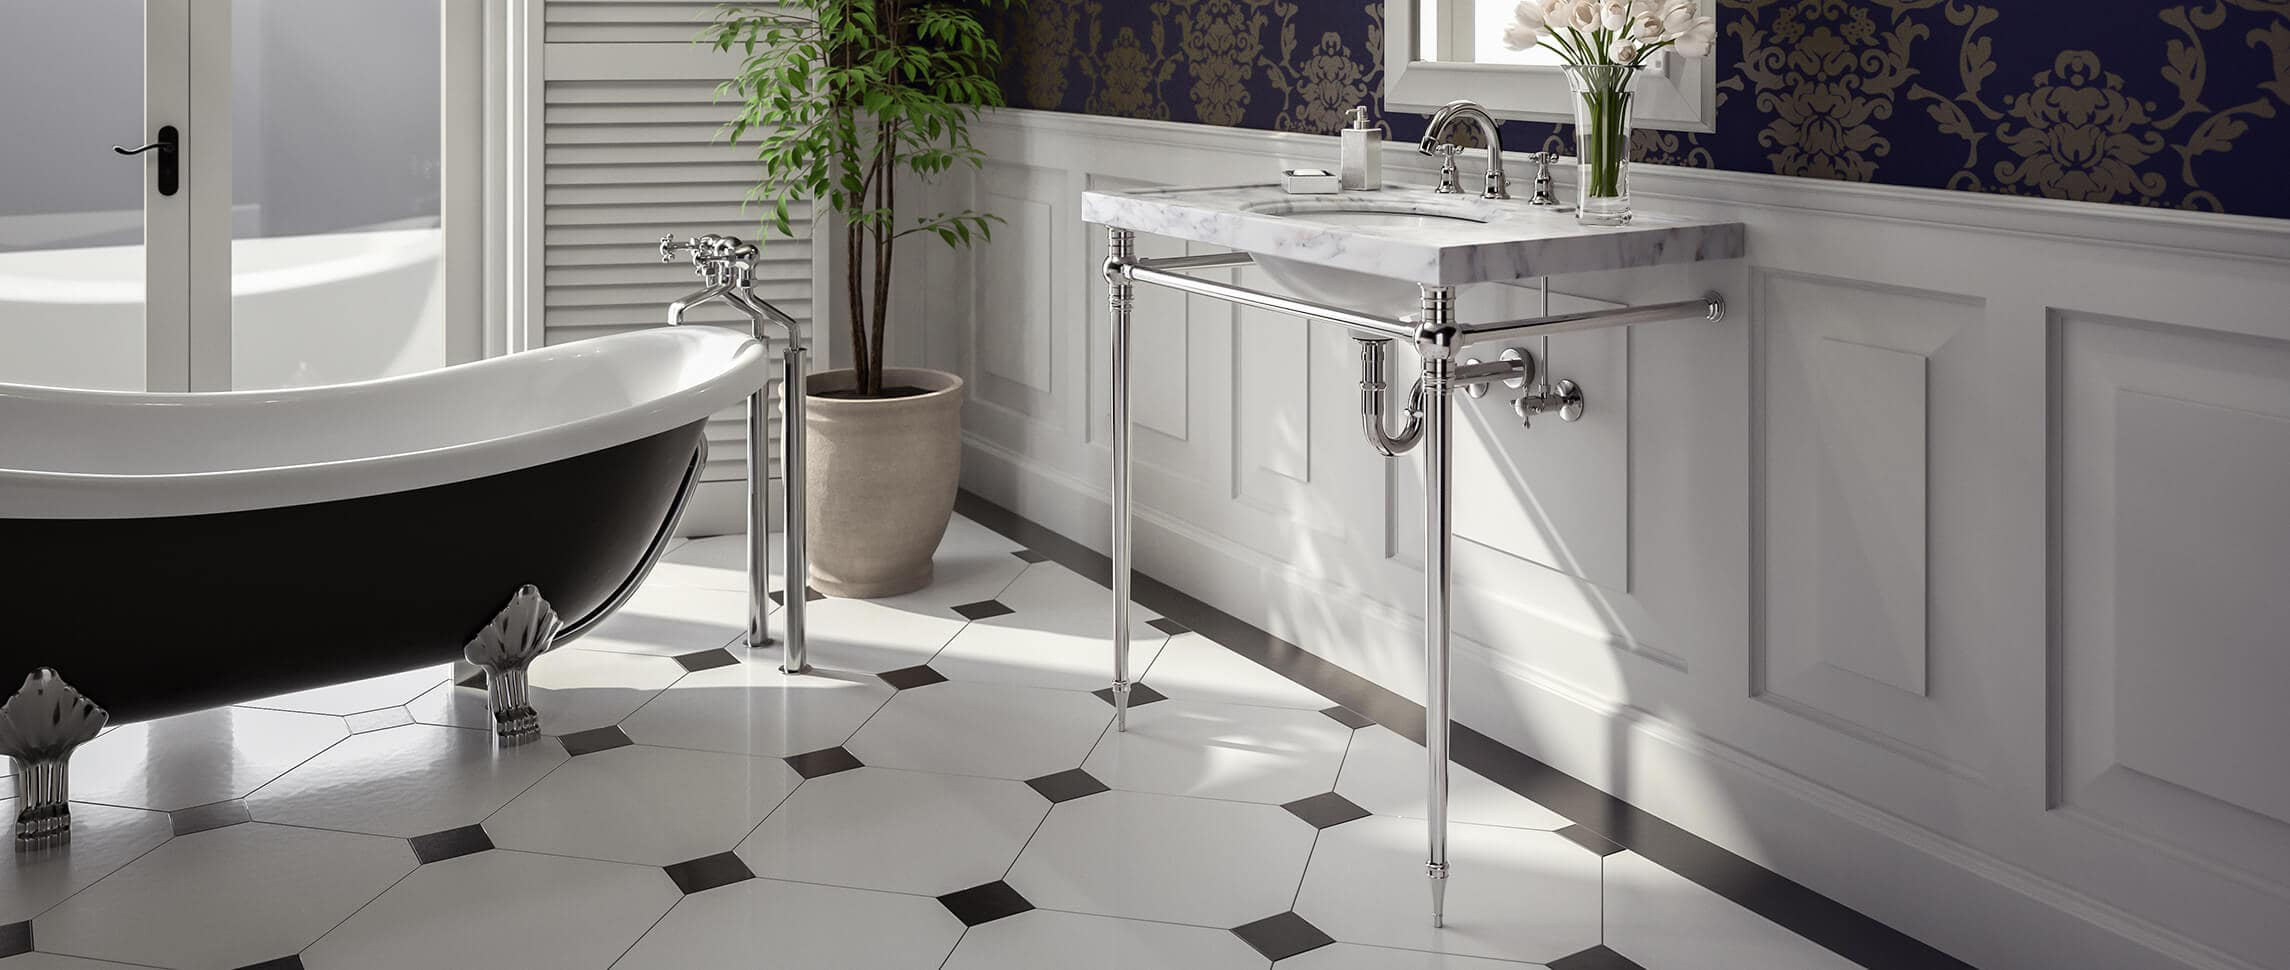 Kingston style vanity sink legs in elegant bathroom